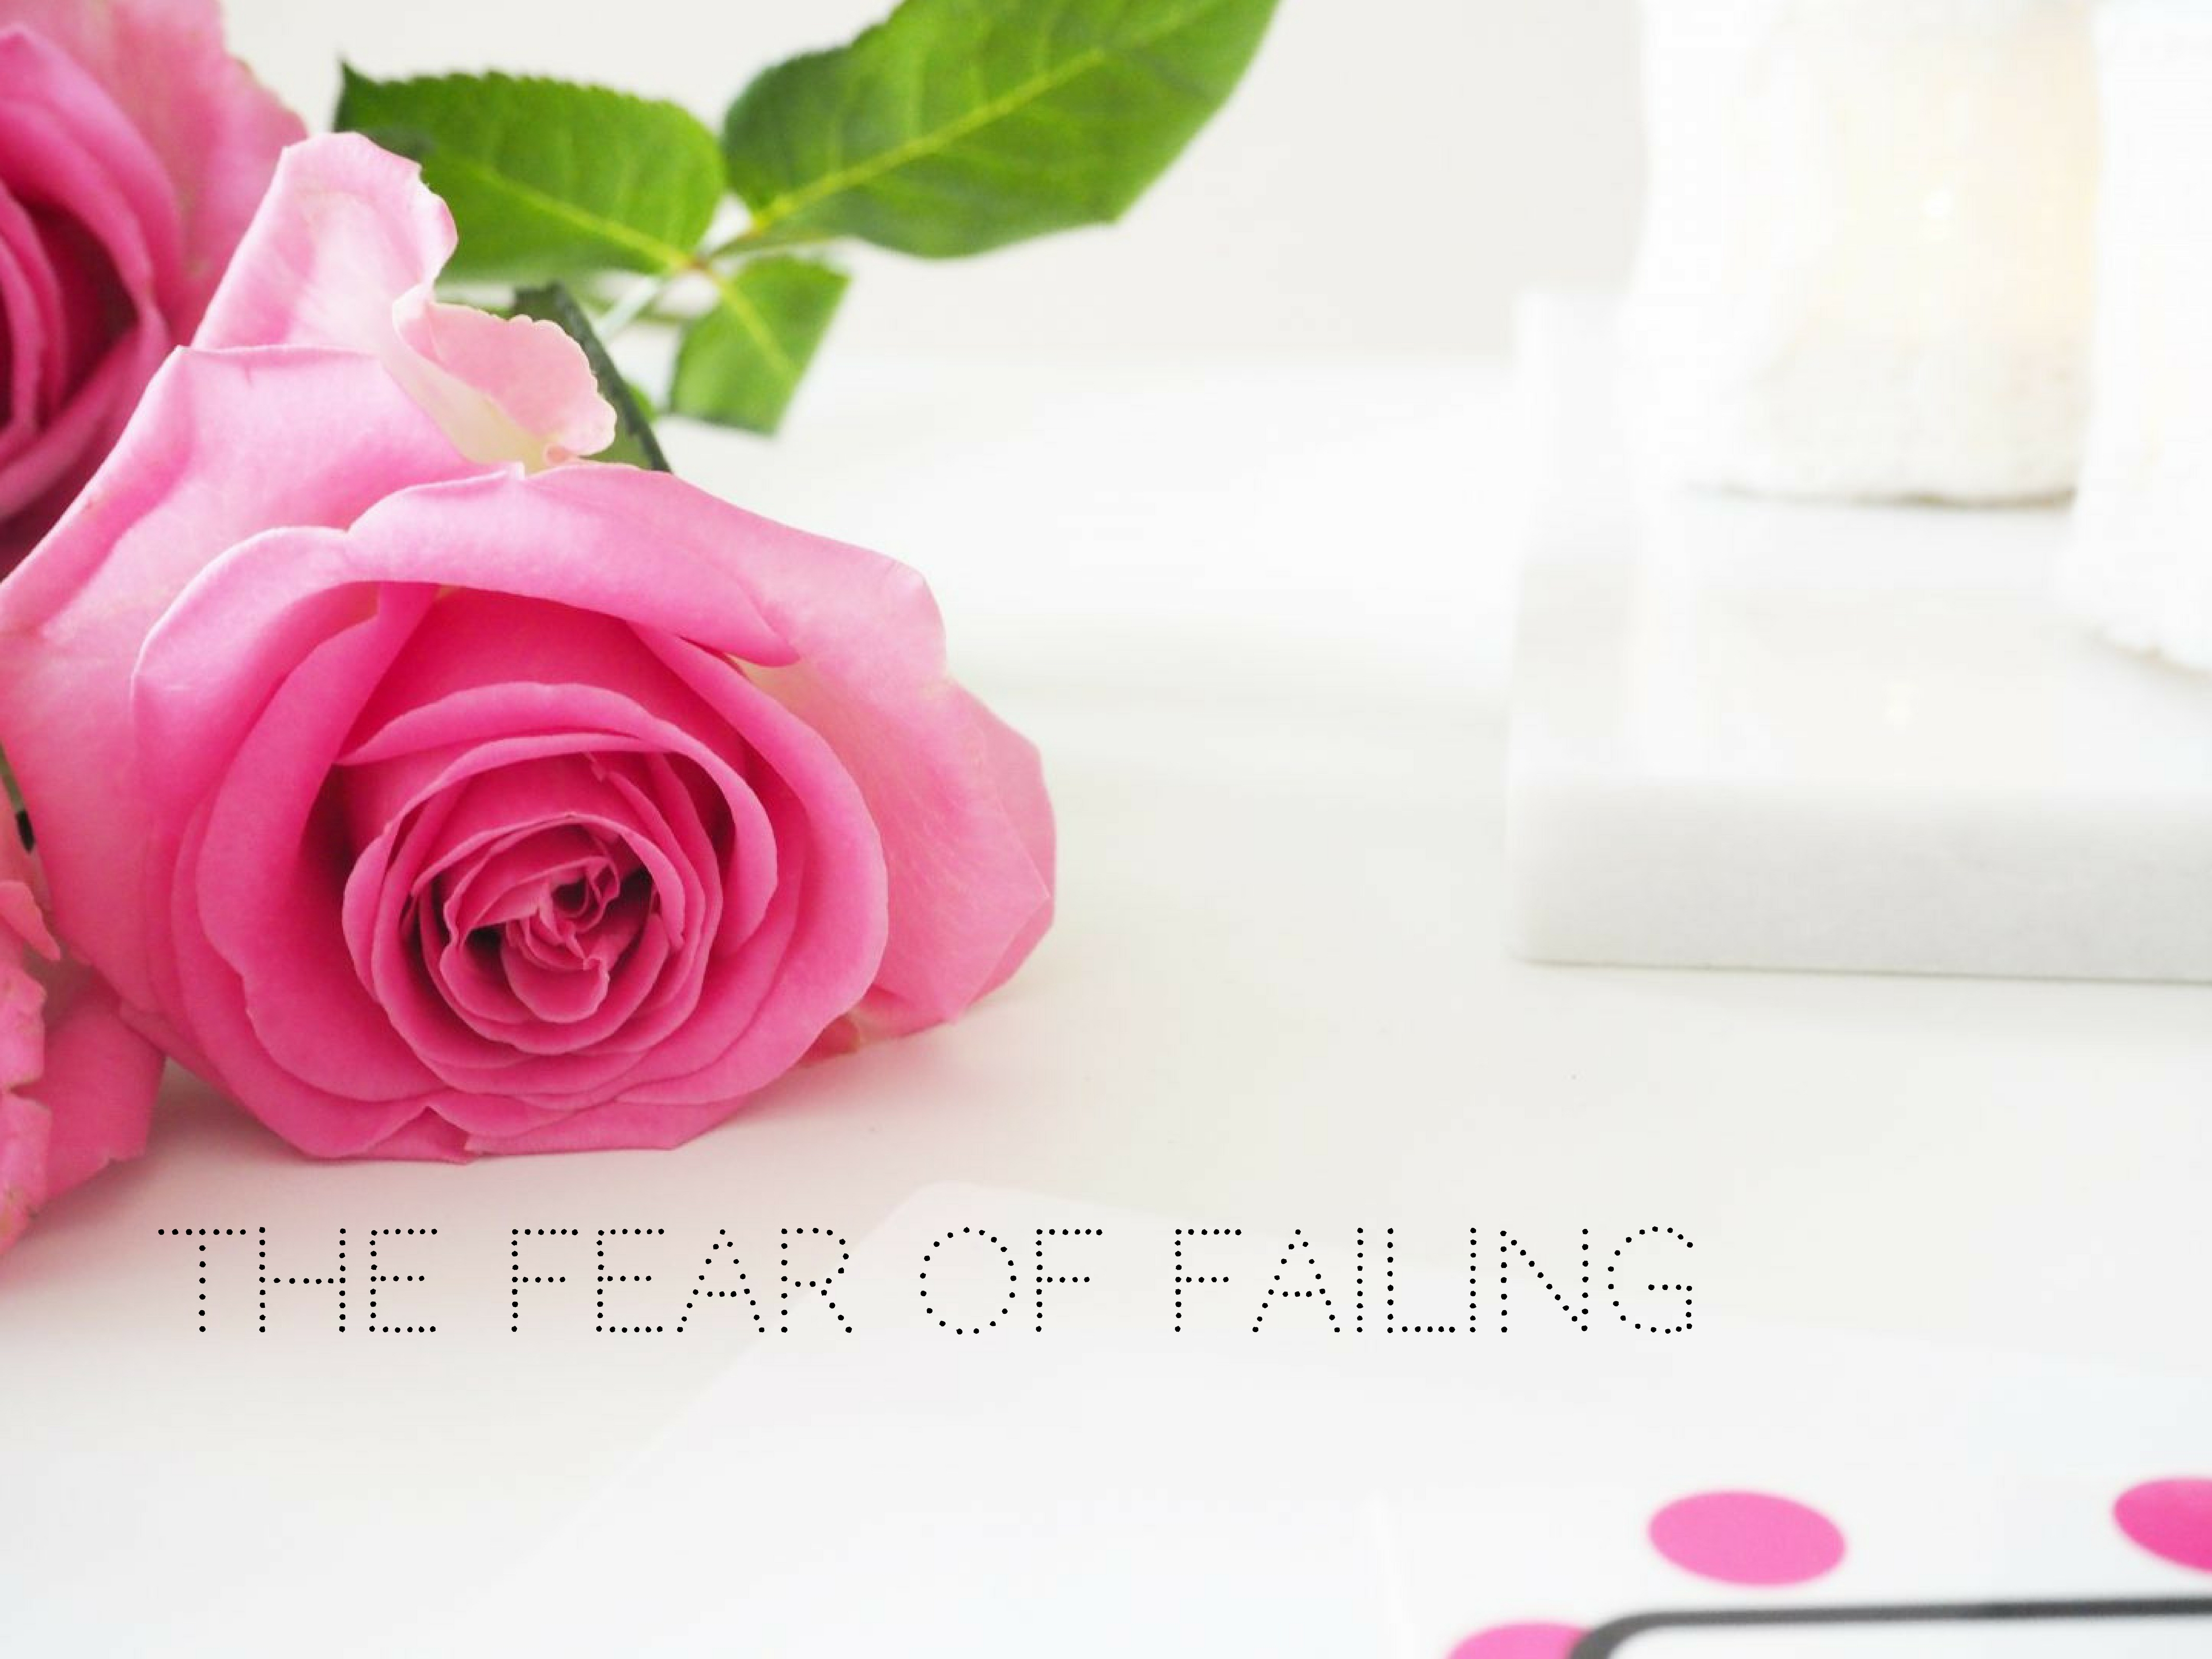 The fear of failing